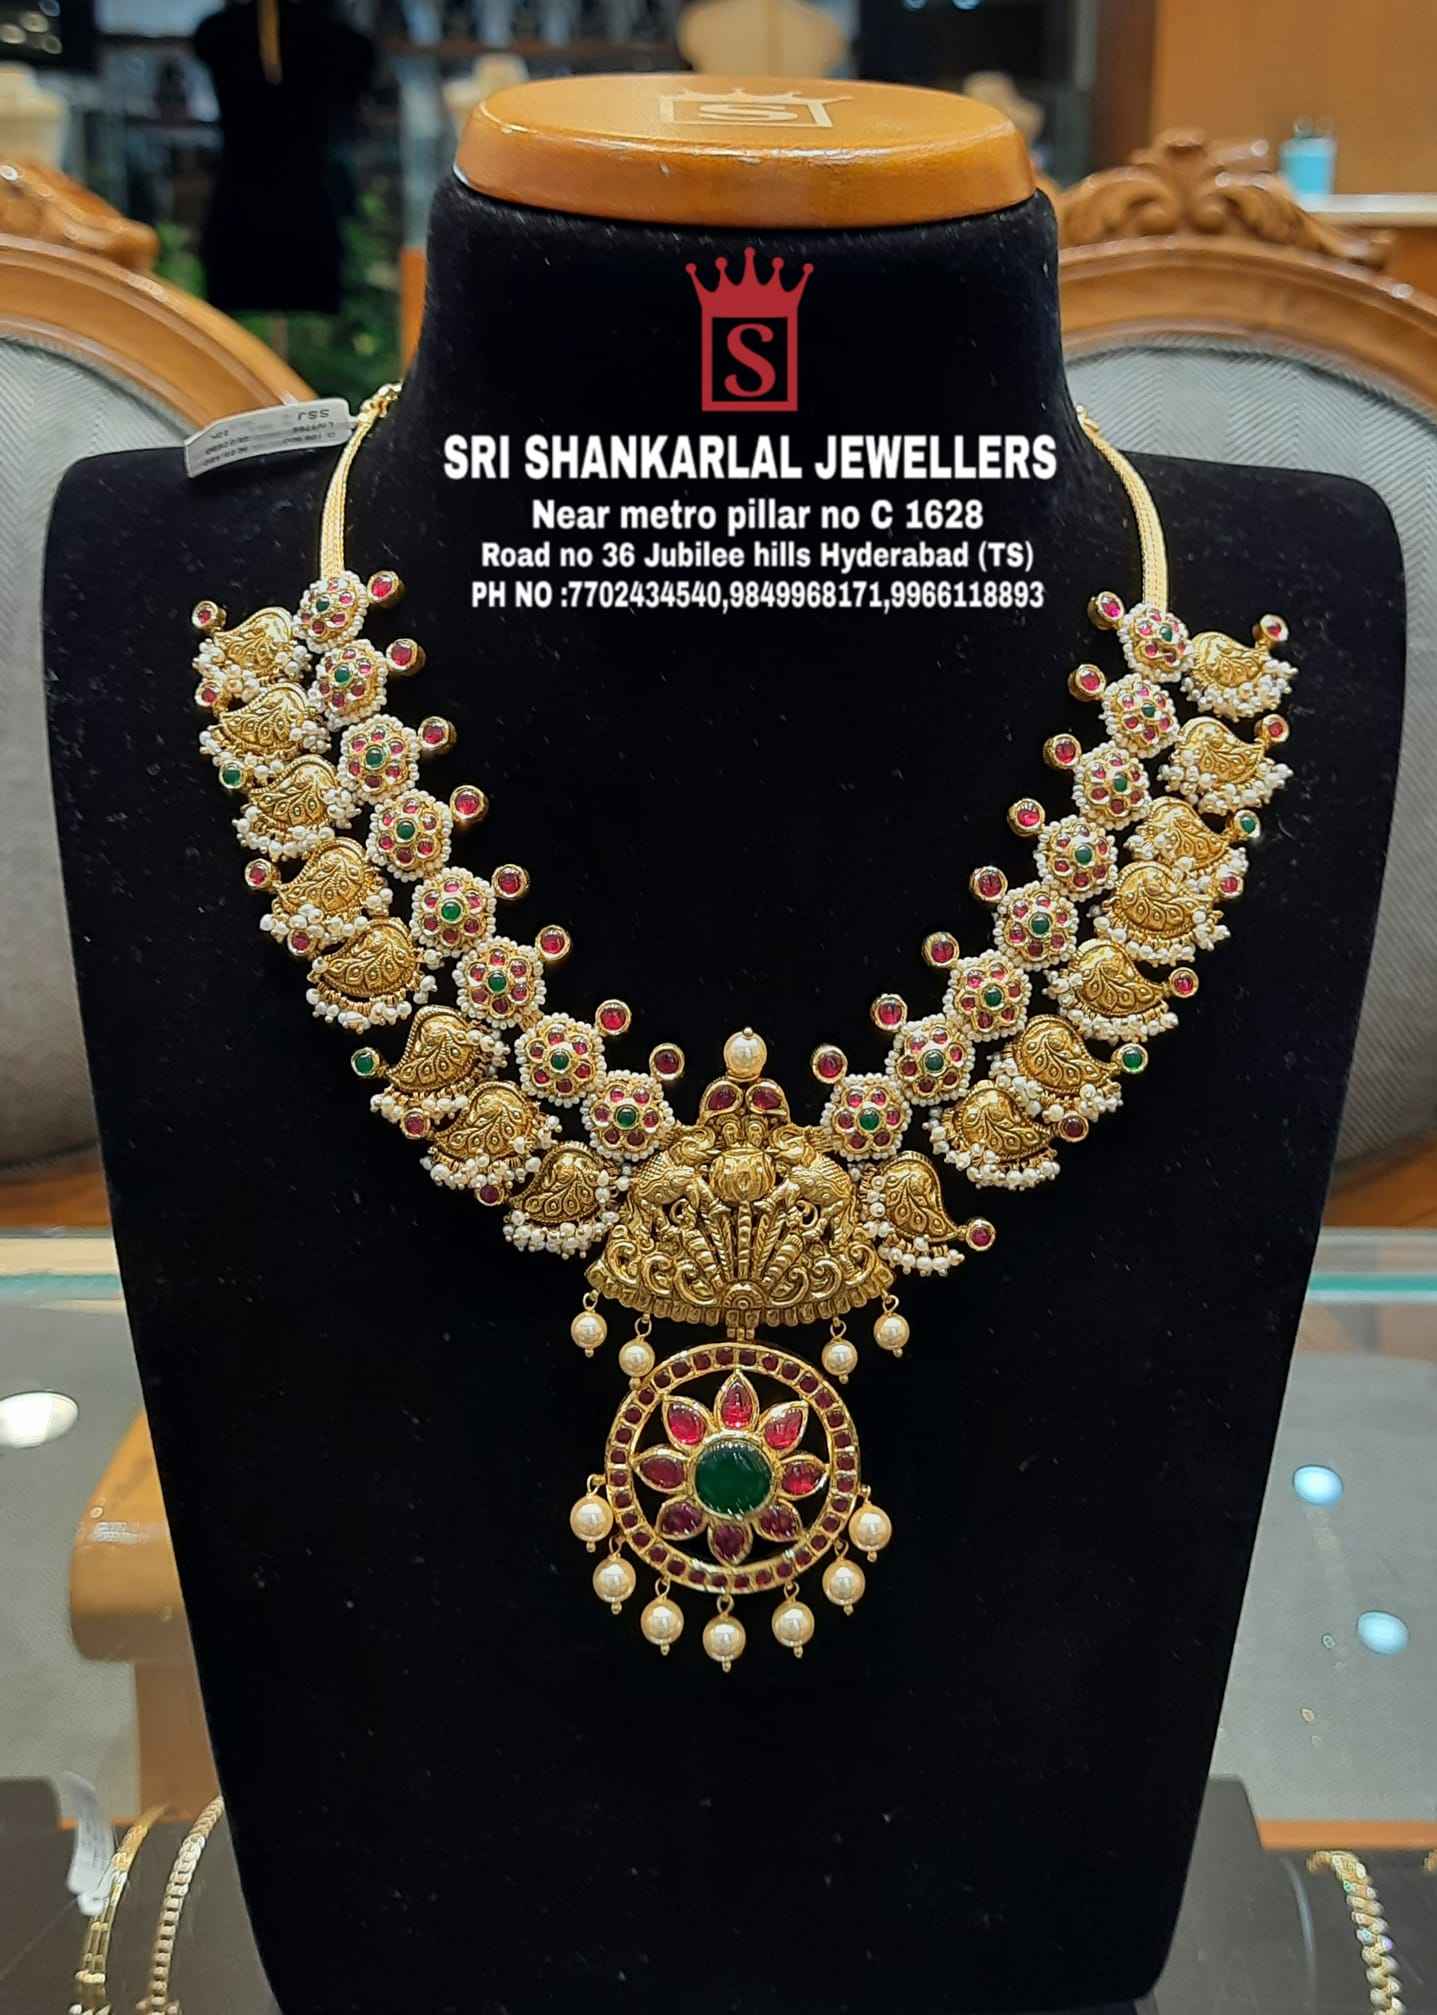 Latest Nakshi Kundan Necklace Jewellery in light weight and heavy looking jewellery and vast collection Please visit on video call Phone number 7702434540;9849968171;9966118893. 2021-08-19